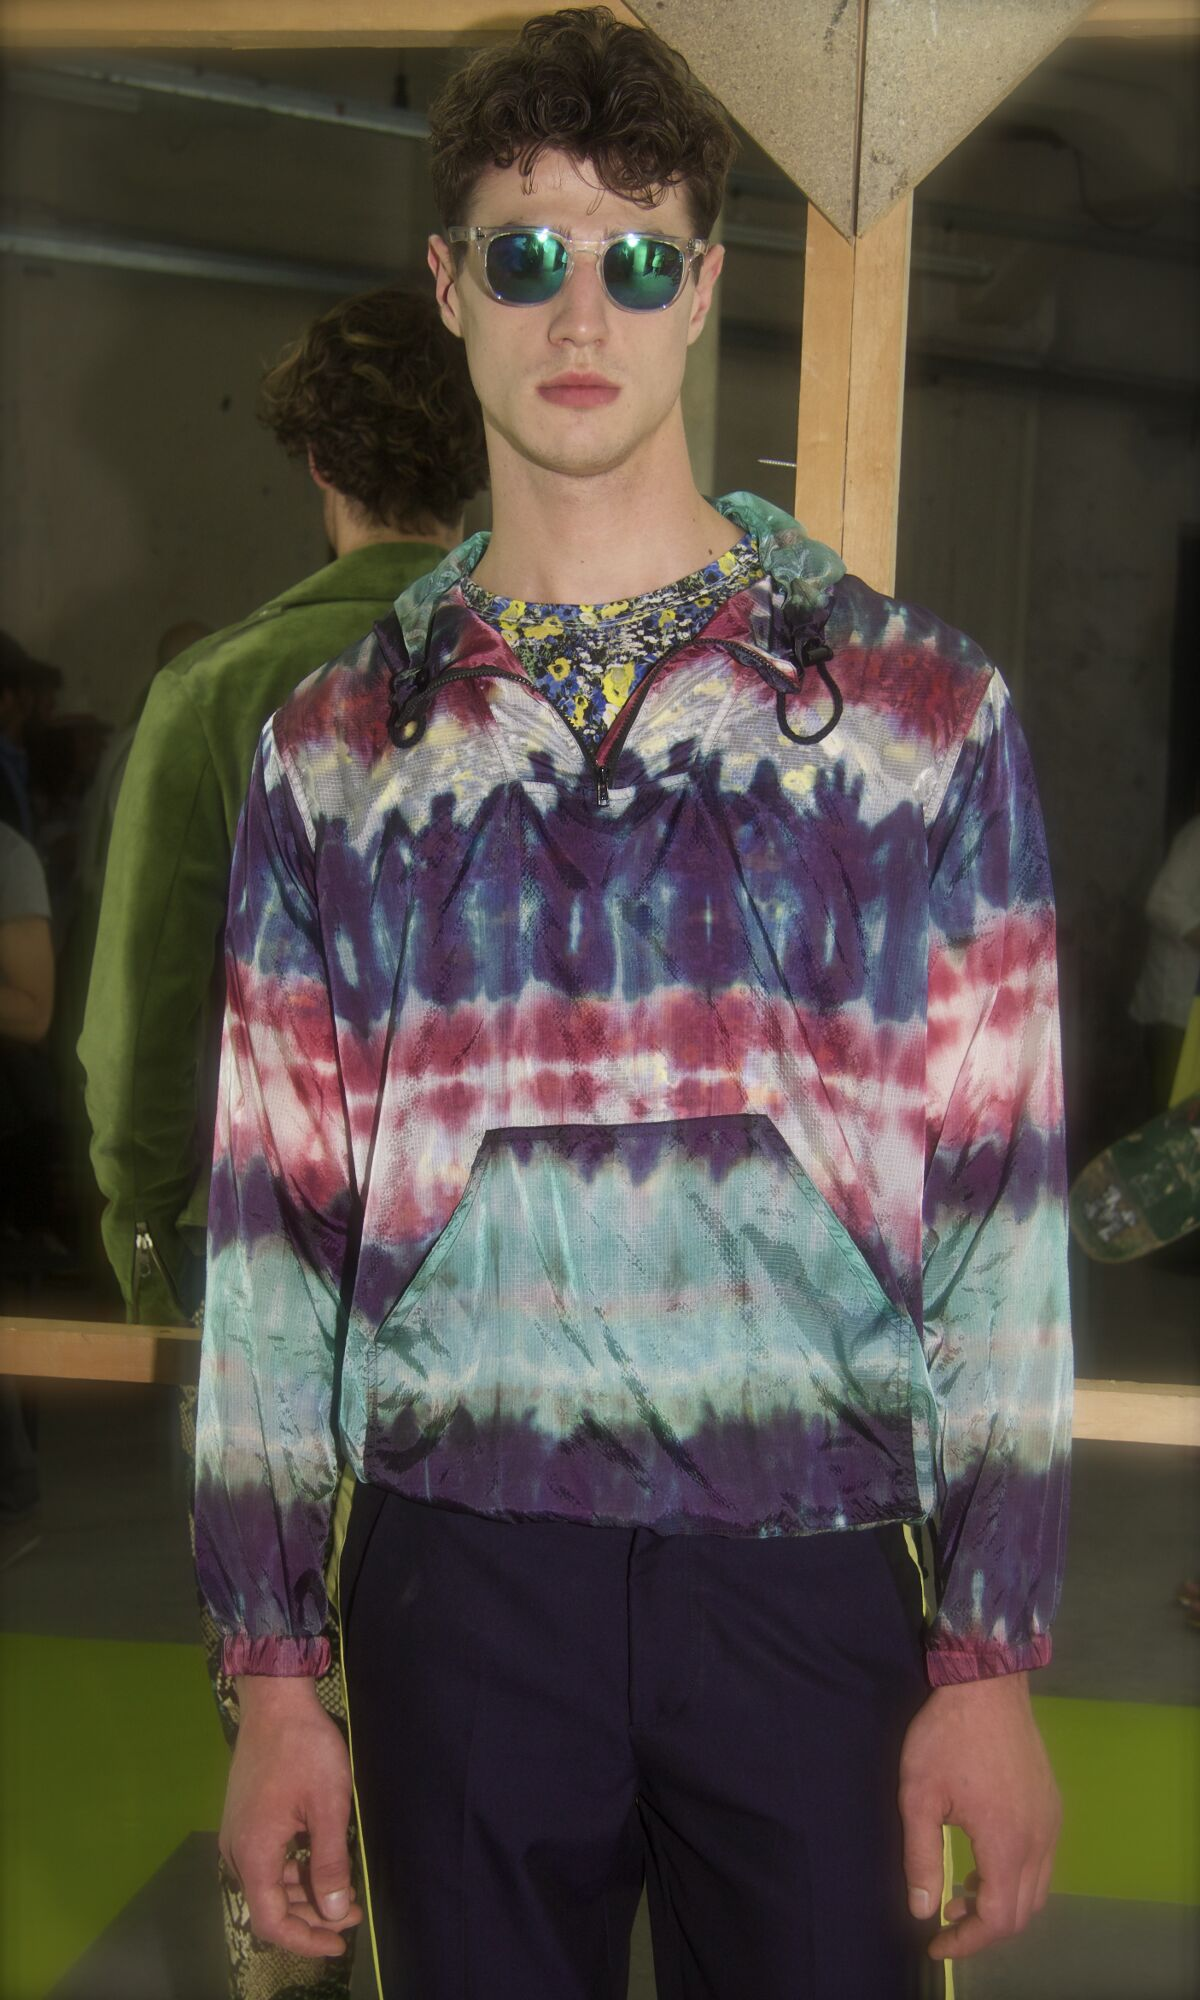 Msgm SS 2014 Men's Collection Pitti Immagine Uomo